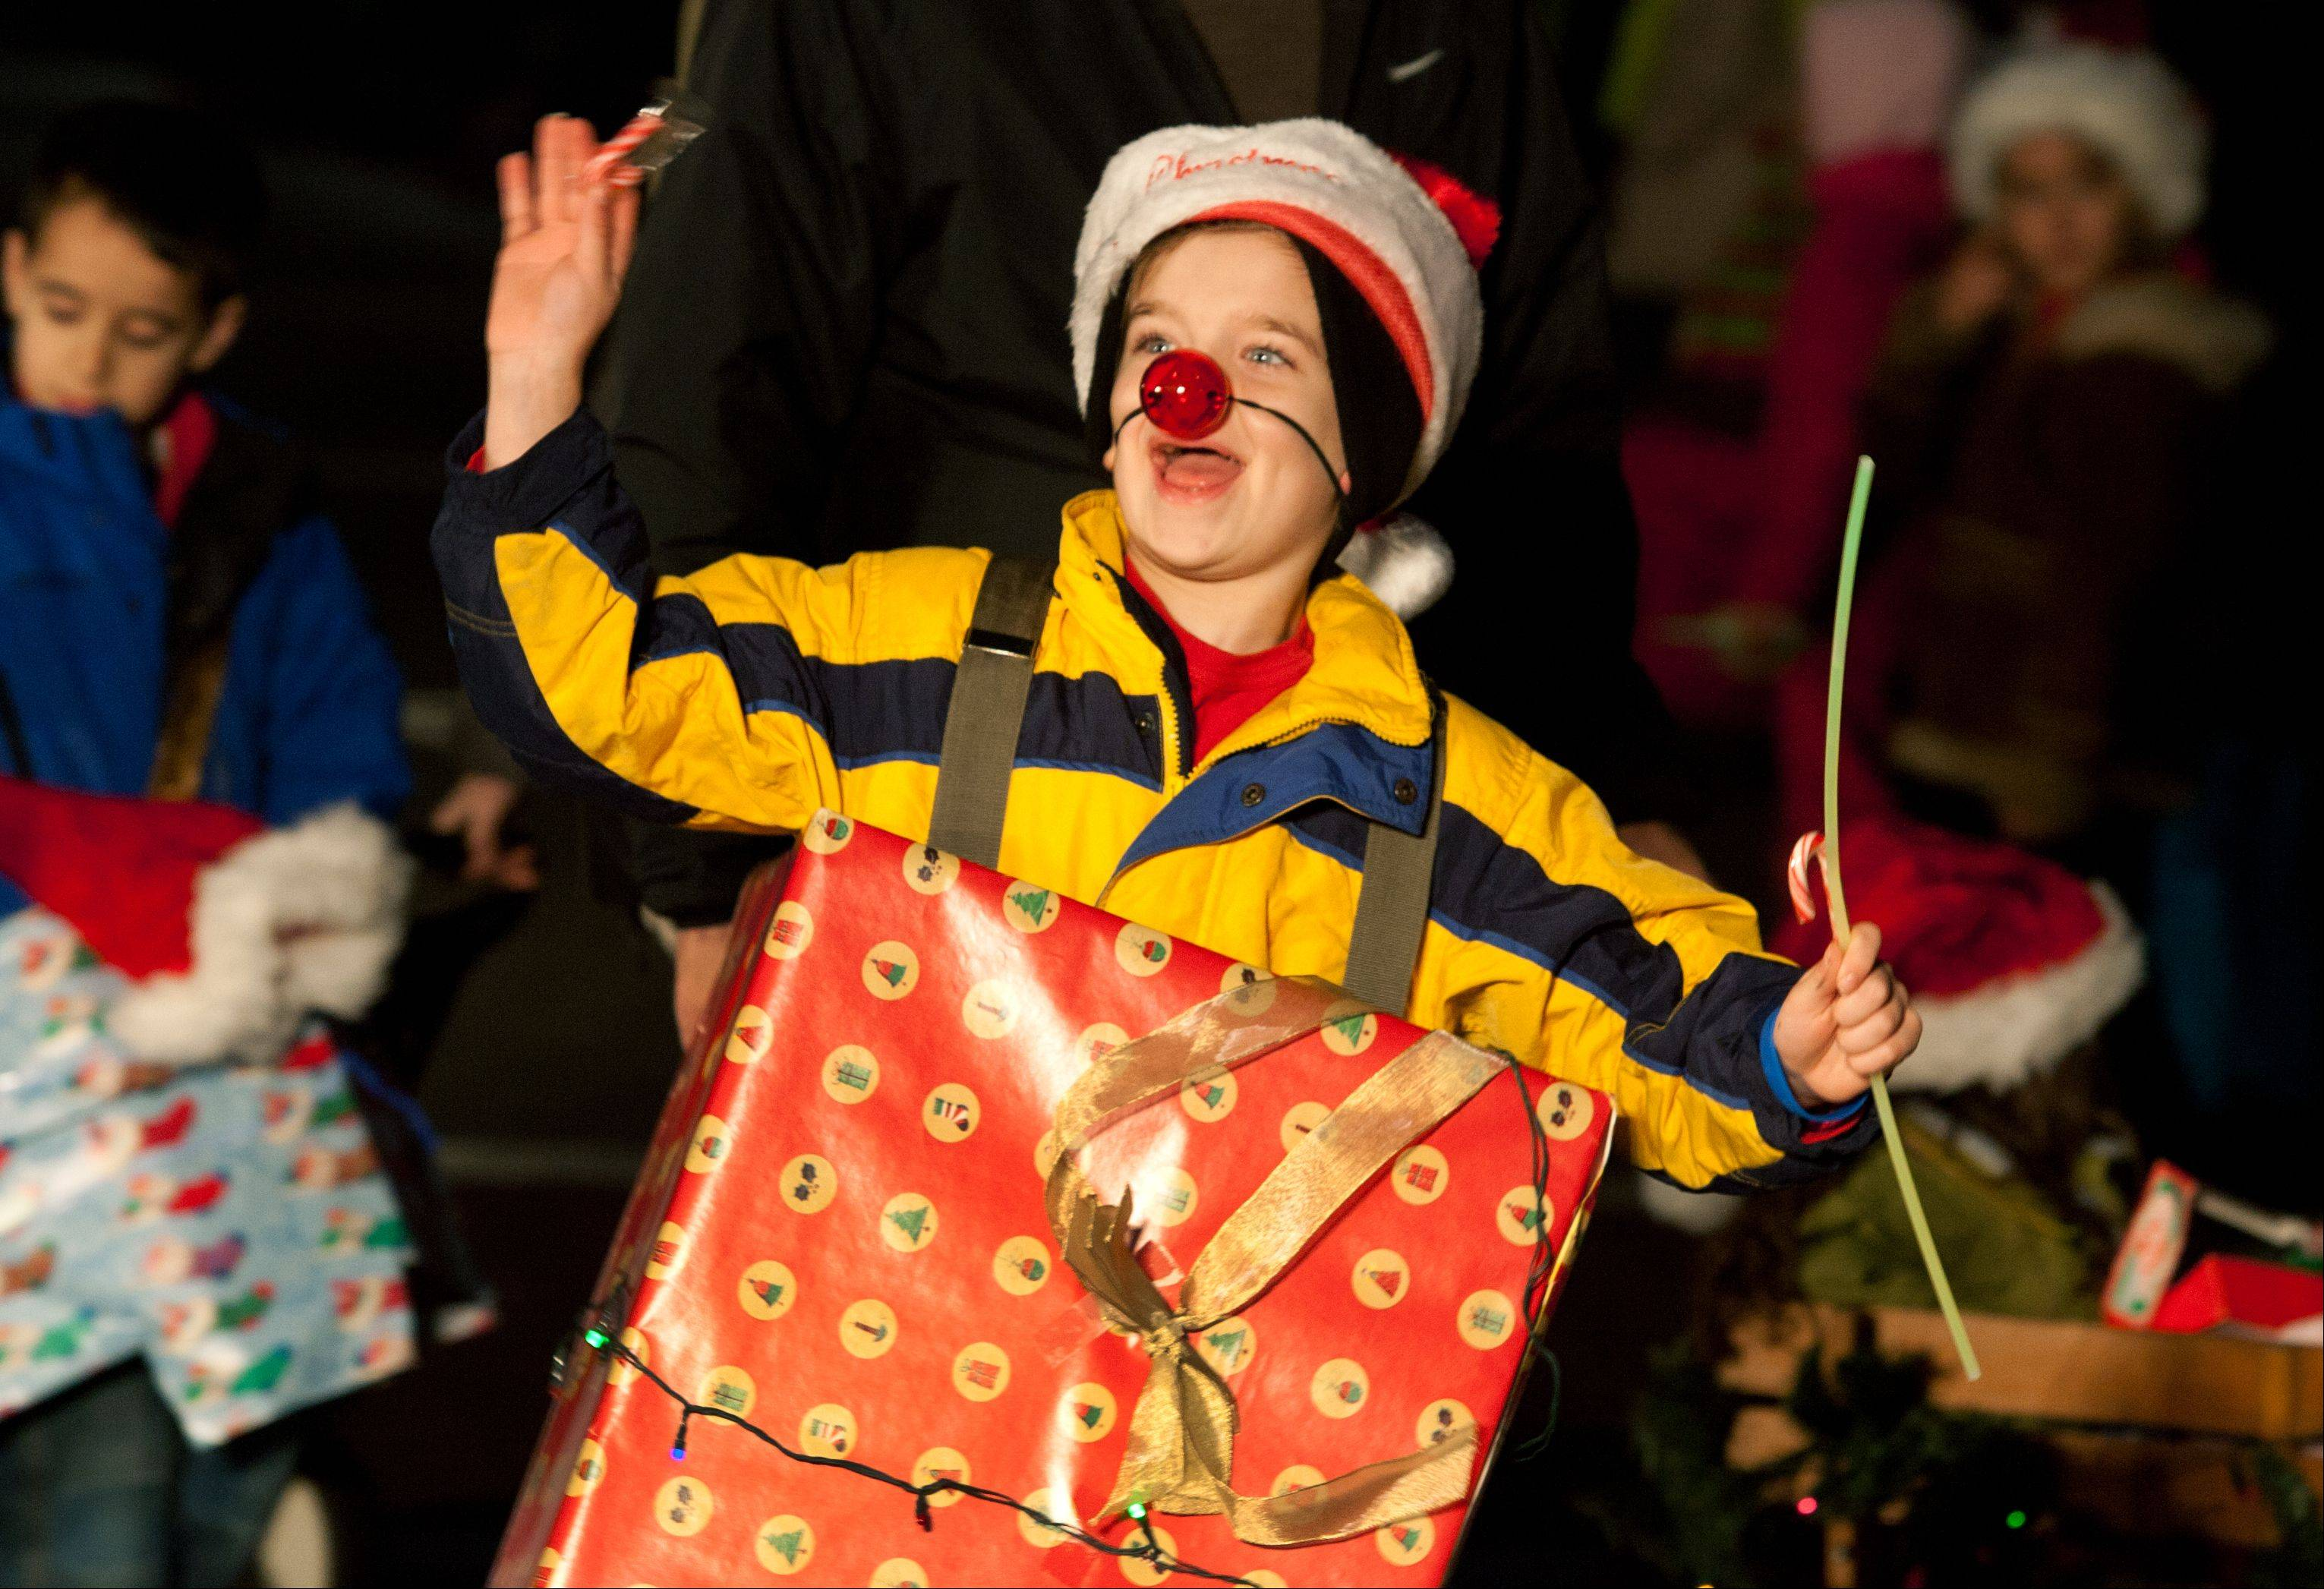 Cub Scout Pack 317's Brian Beutell, along with other members from Patterson School, marches in Saturday's Little Friends Parade of Lights in Naperville.